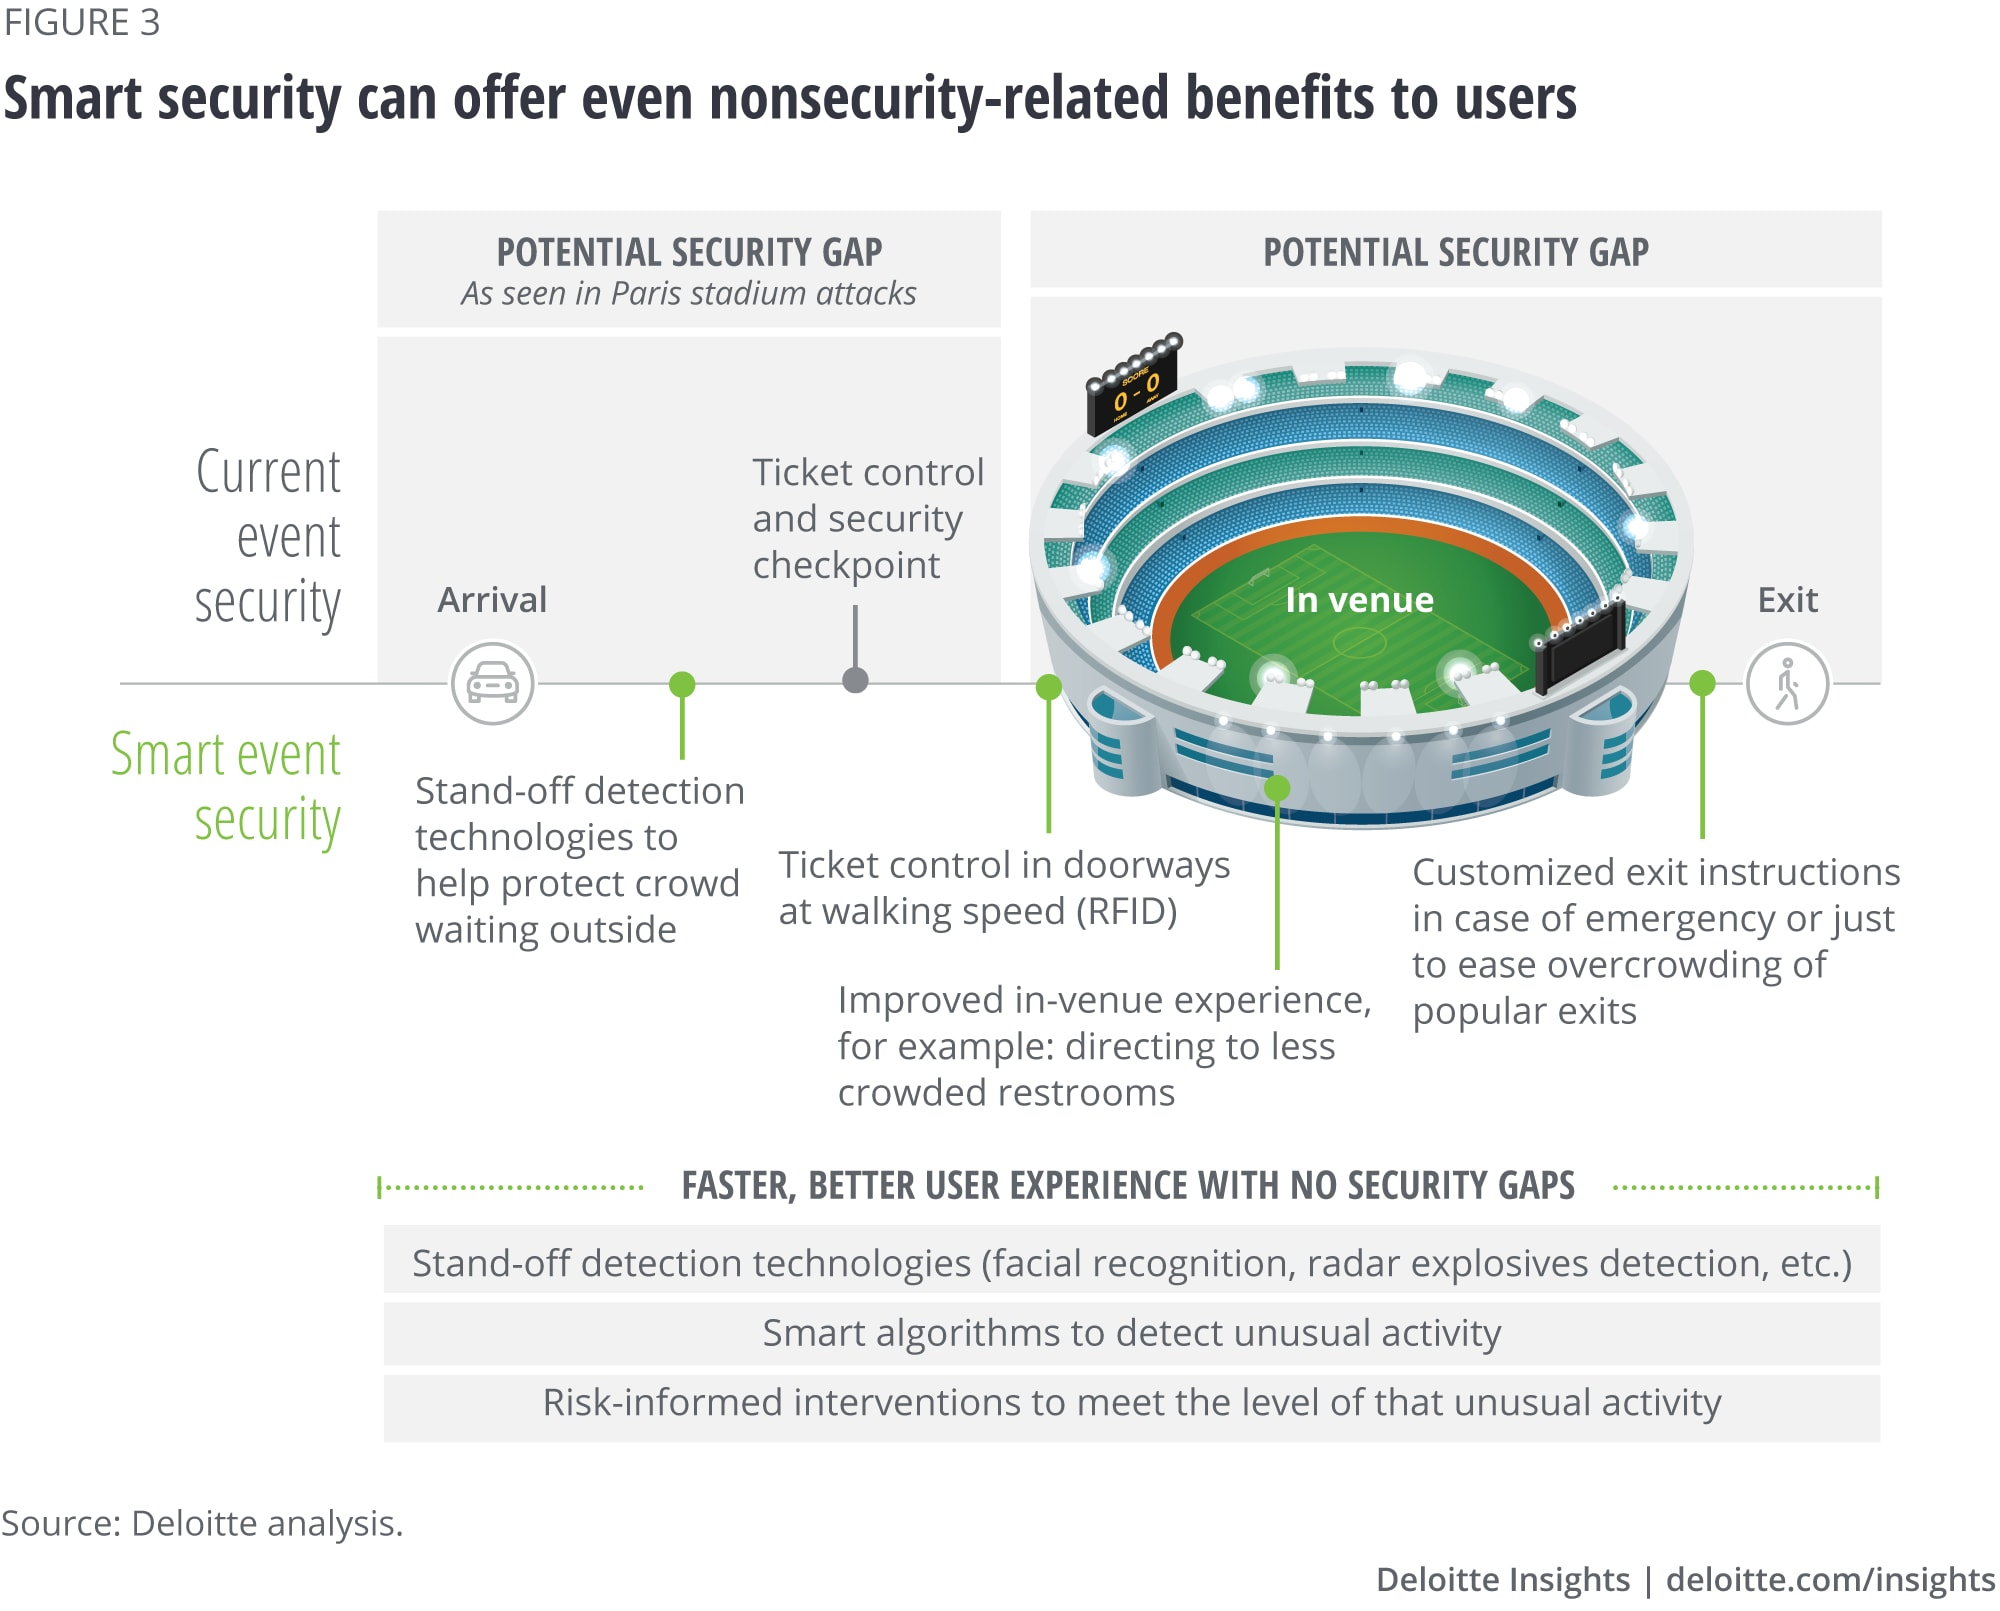 Smart security can offer even nonsecurity-related benefits to users